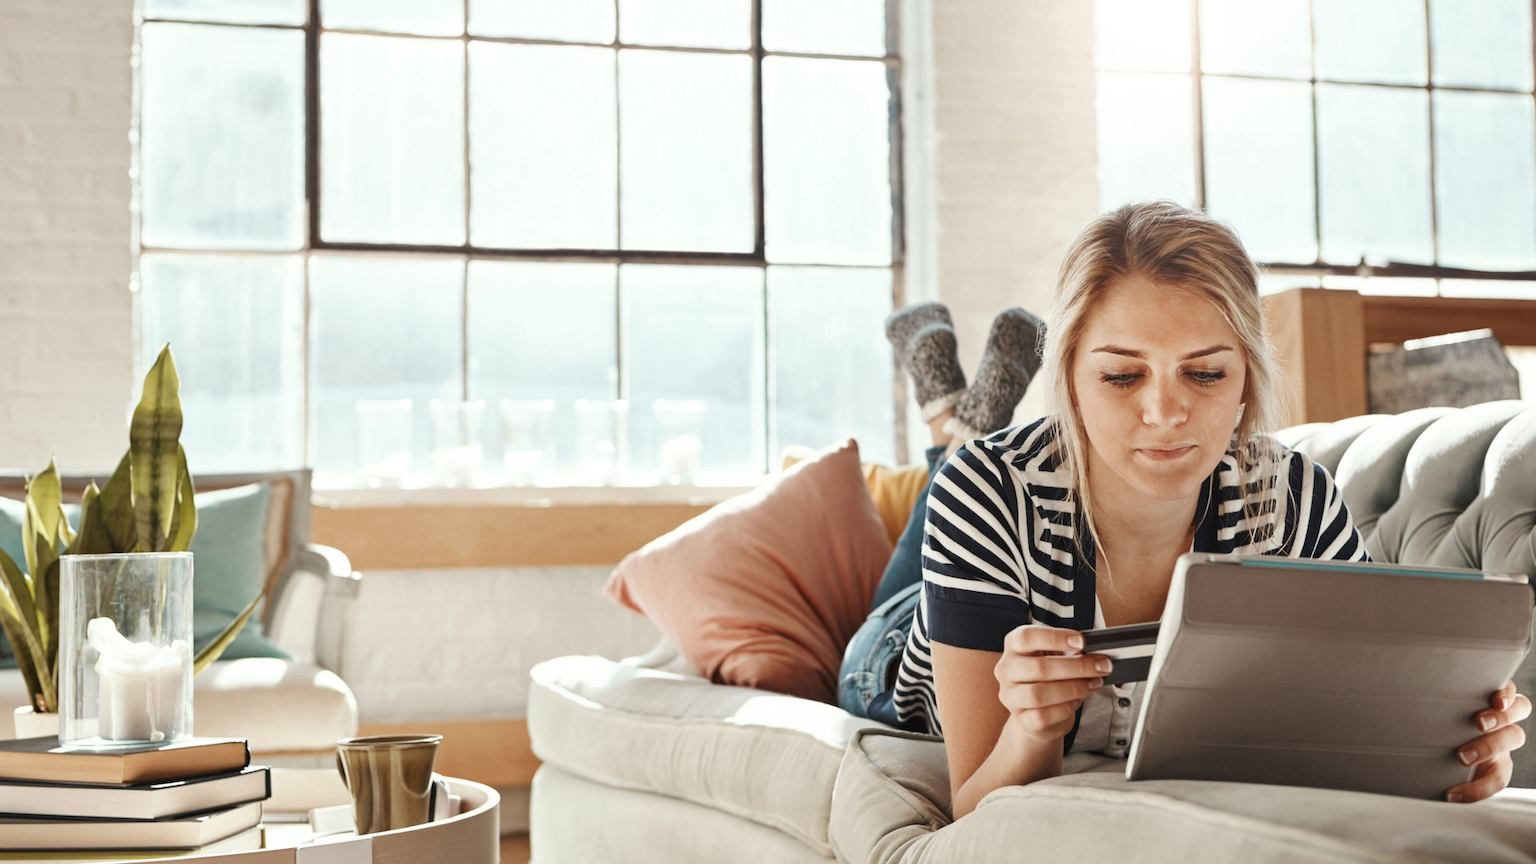 Young lady laying down on couch holding credit card and tablet.